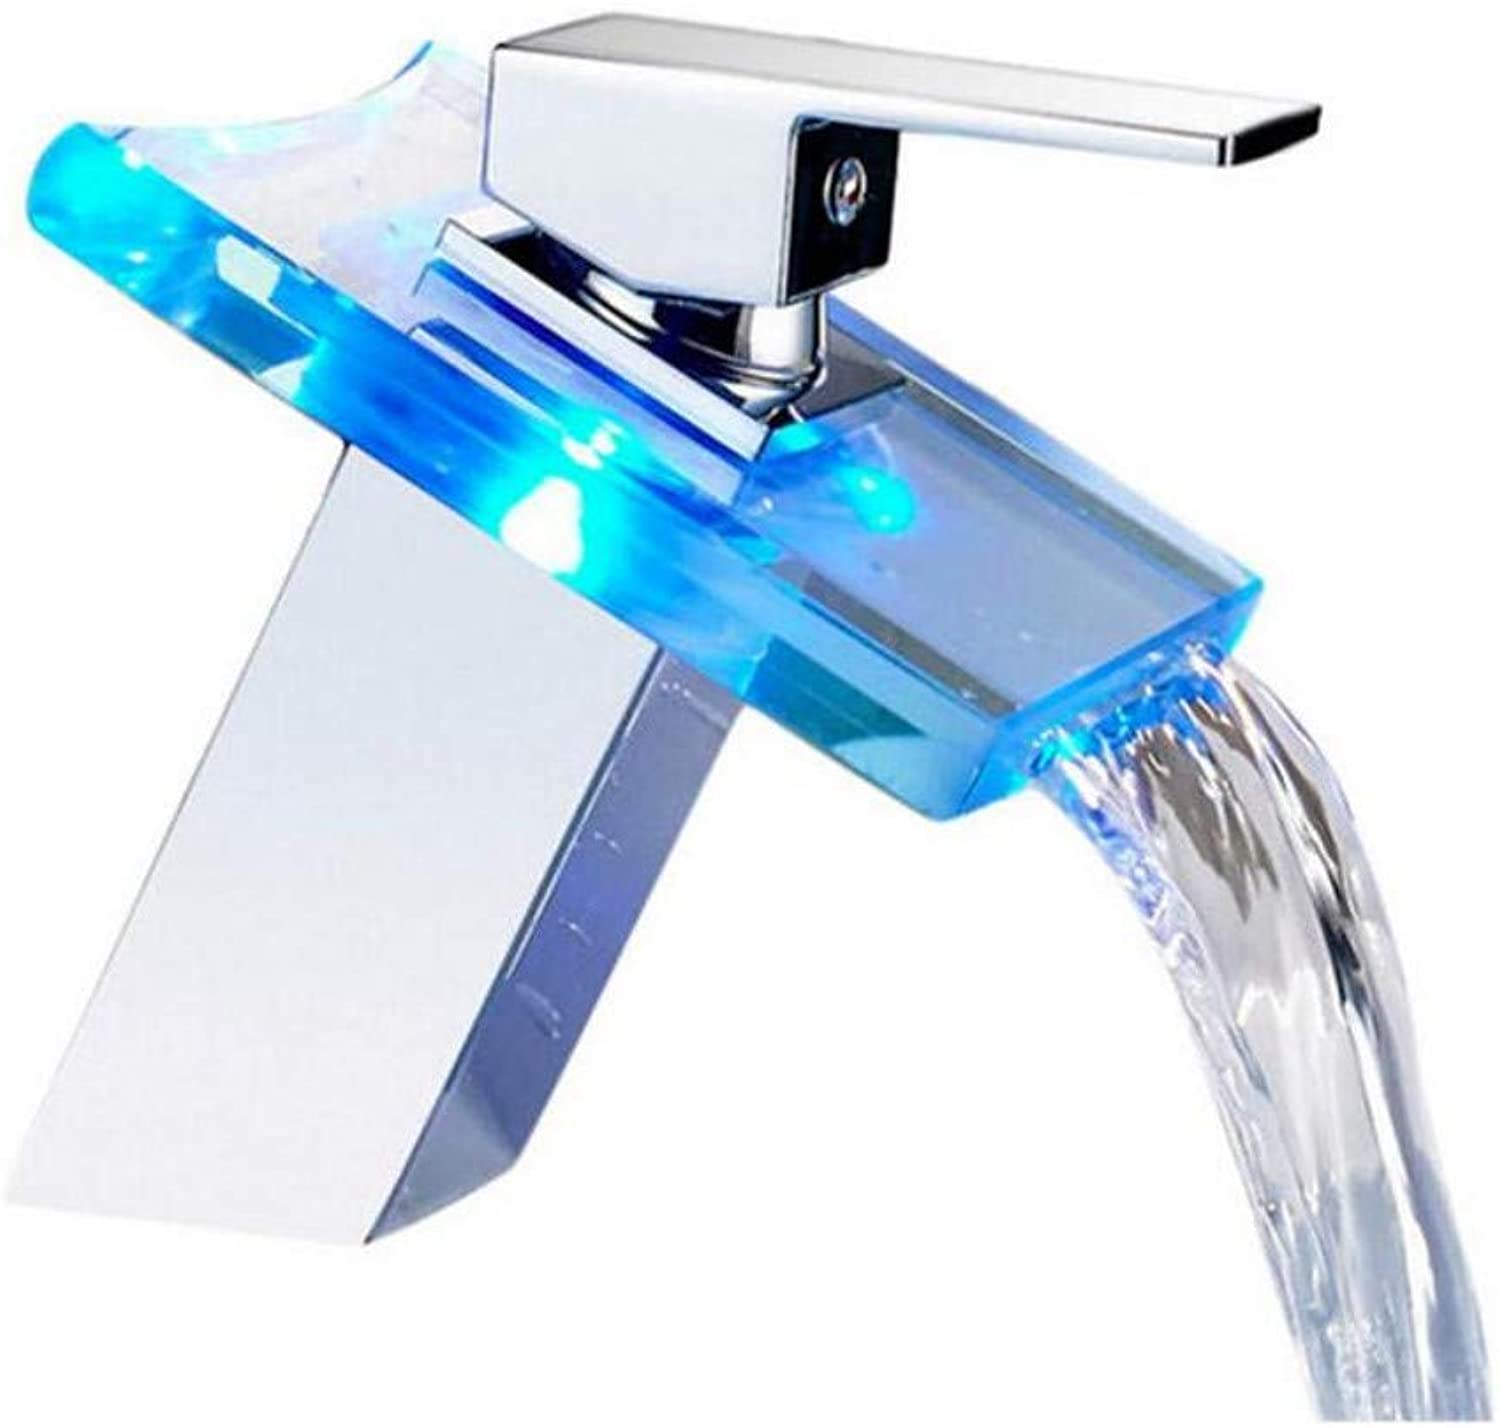 Modern Double Basin Sink Hot and Cold Water Faucet Bathroom Basin Faucet Led Tap Water Power Basin Mixer Faucet